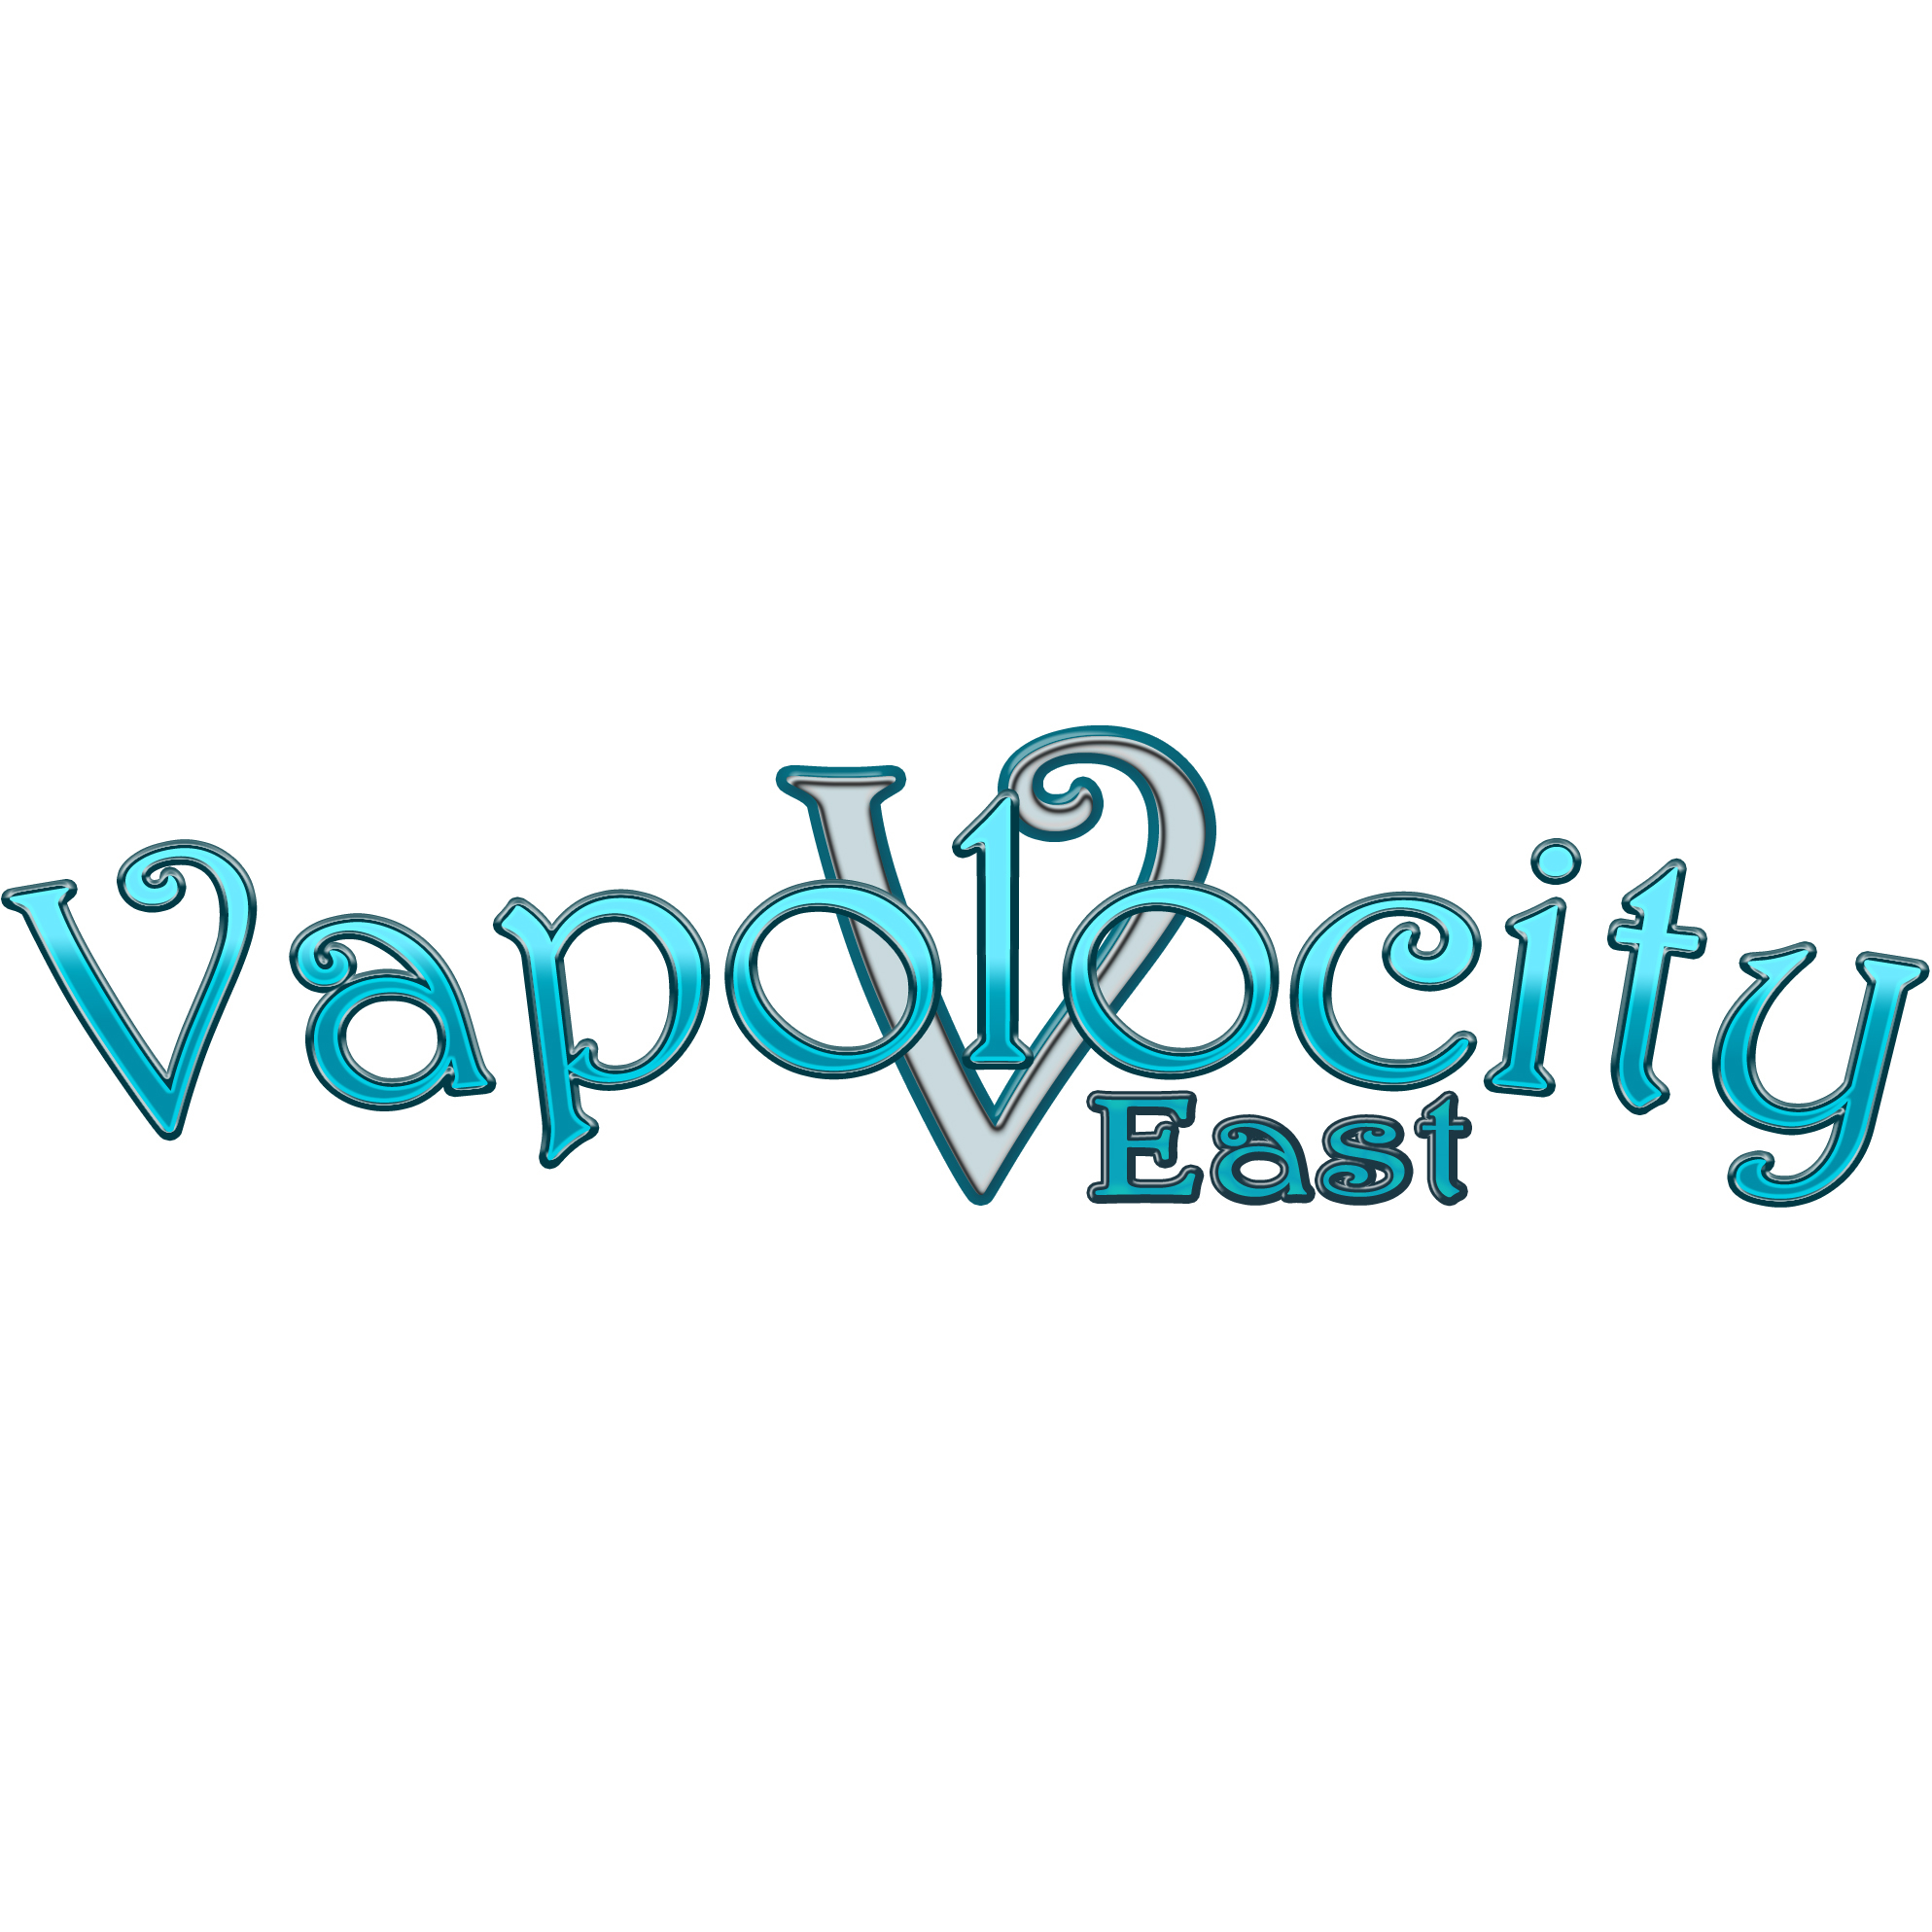 VAPOLOCITY East Best Vape Shop and EJuice in El Paso & Ft Bliss